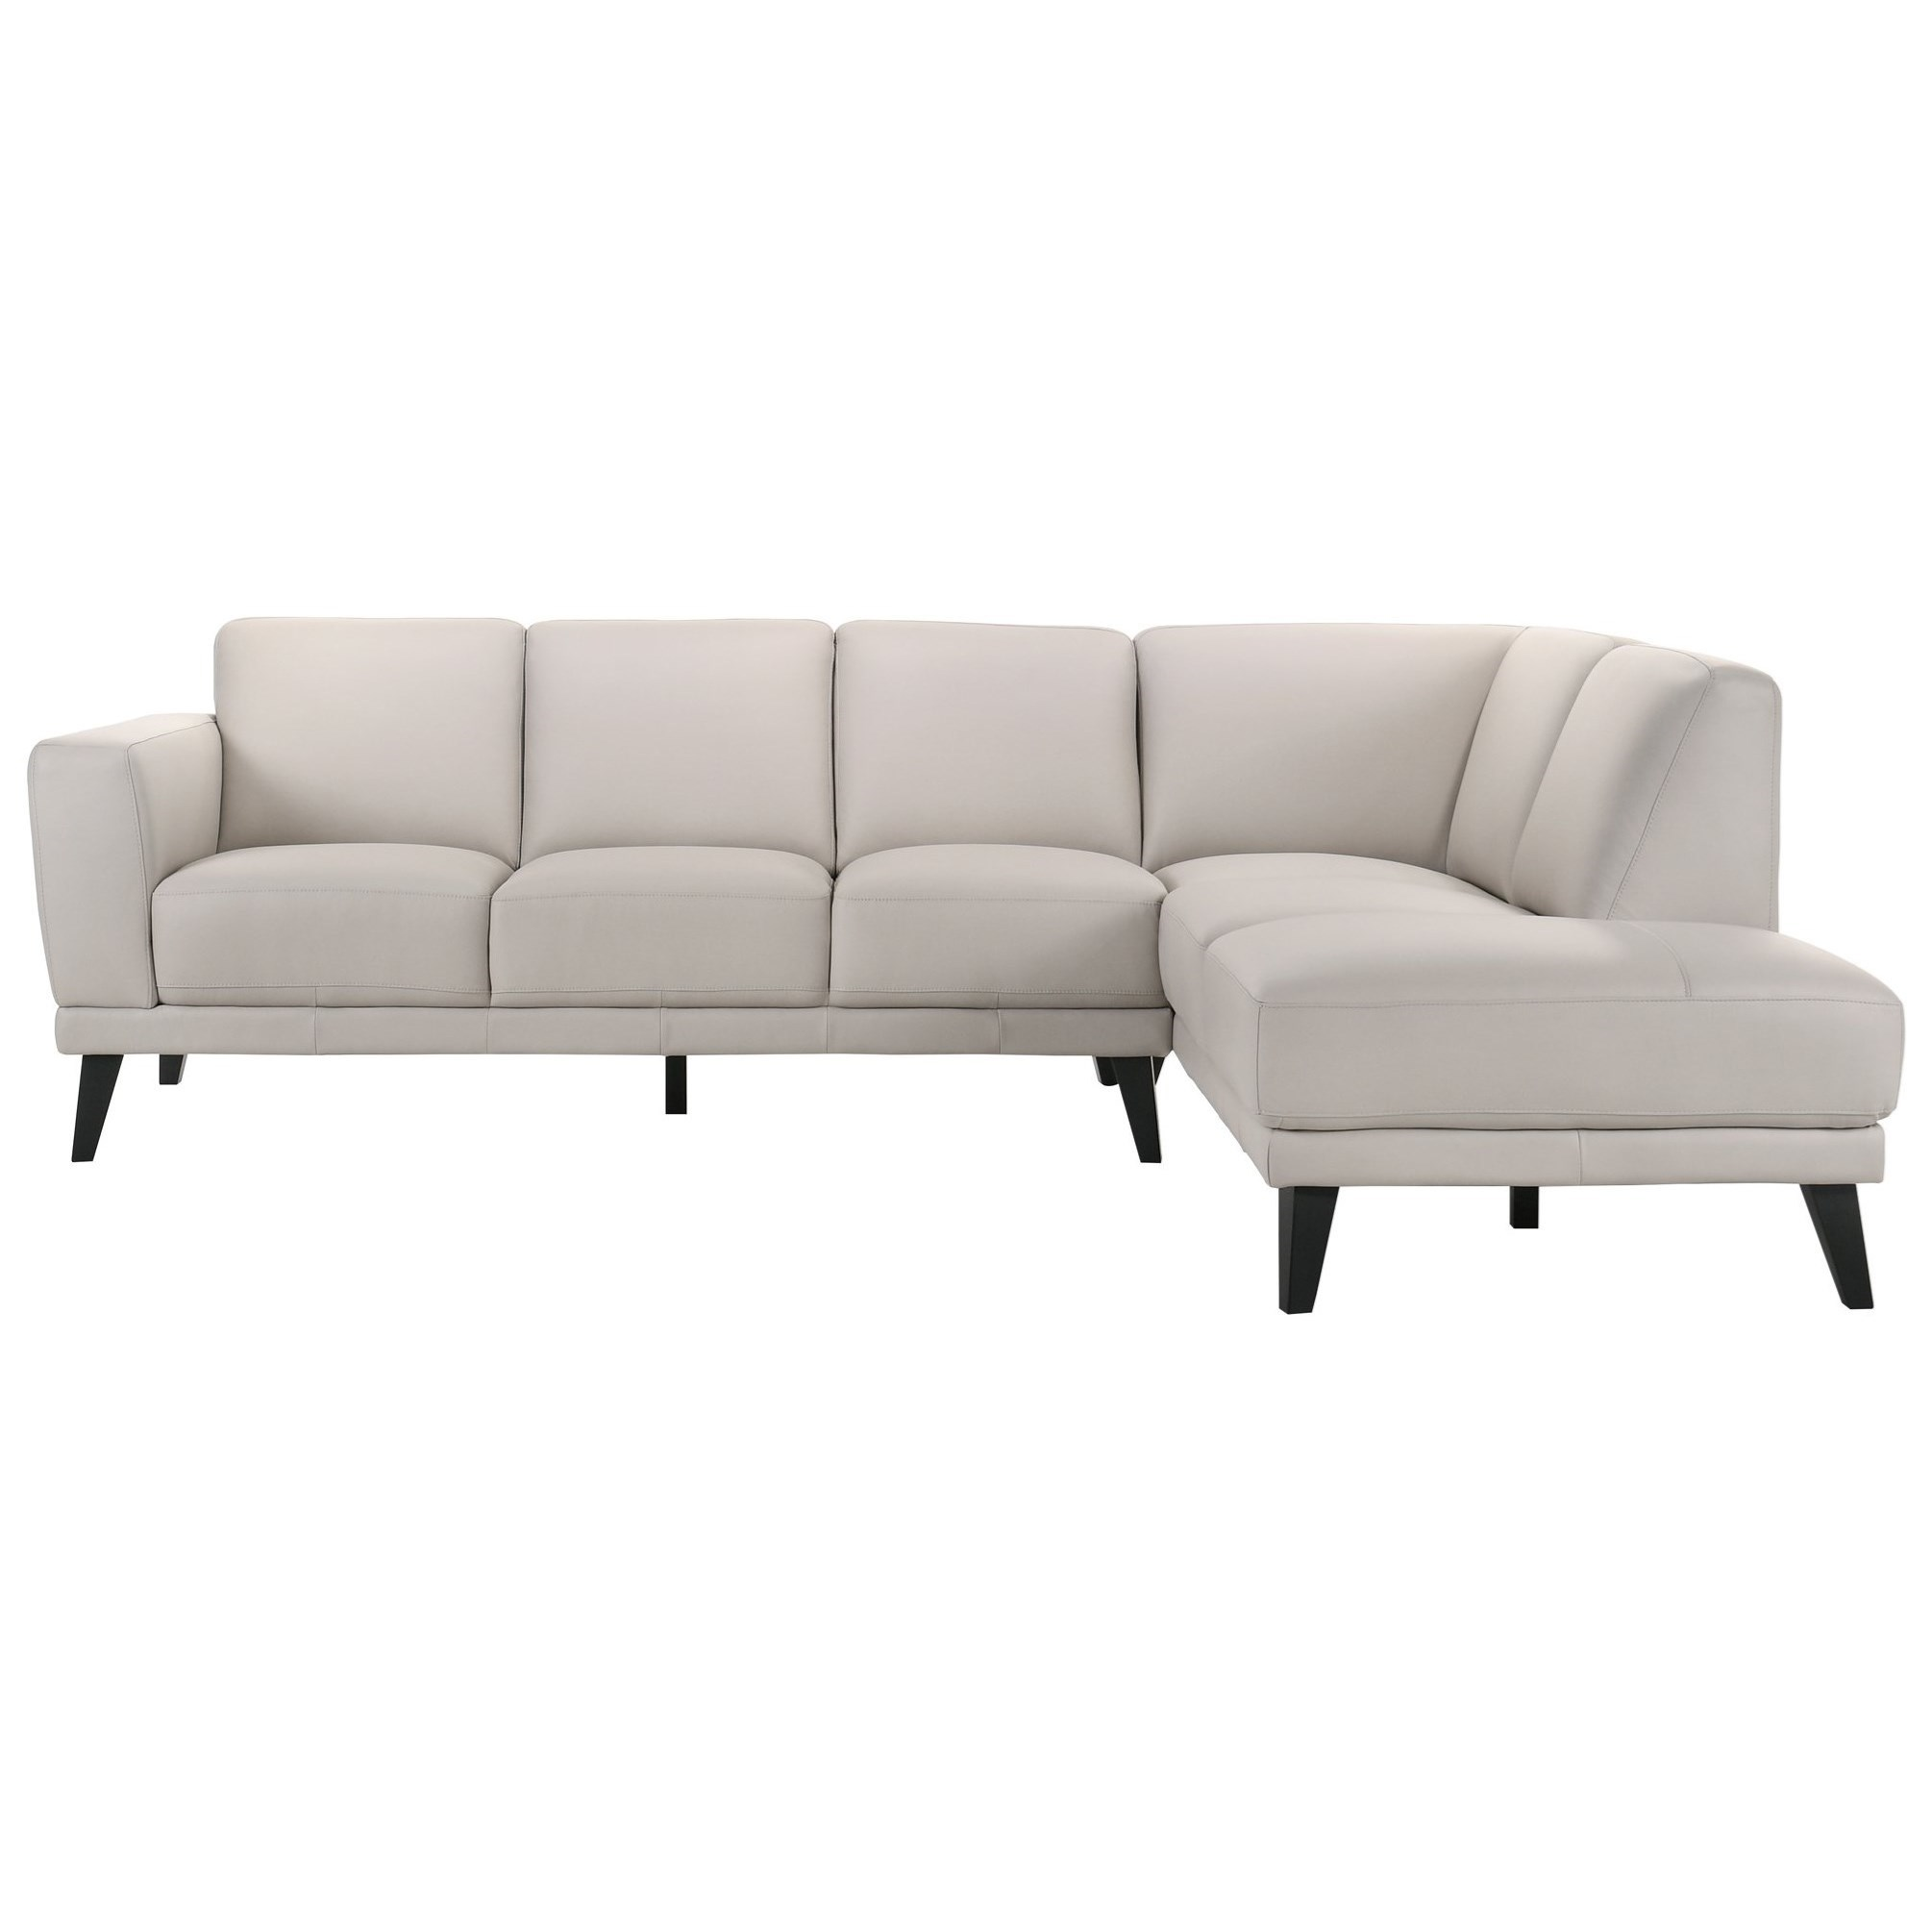 Altamura 5-Seat Sectional w/ RAF Chaise by New Classic at H.L. Stephens